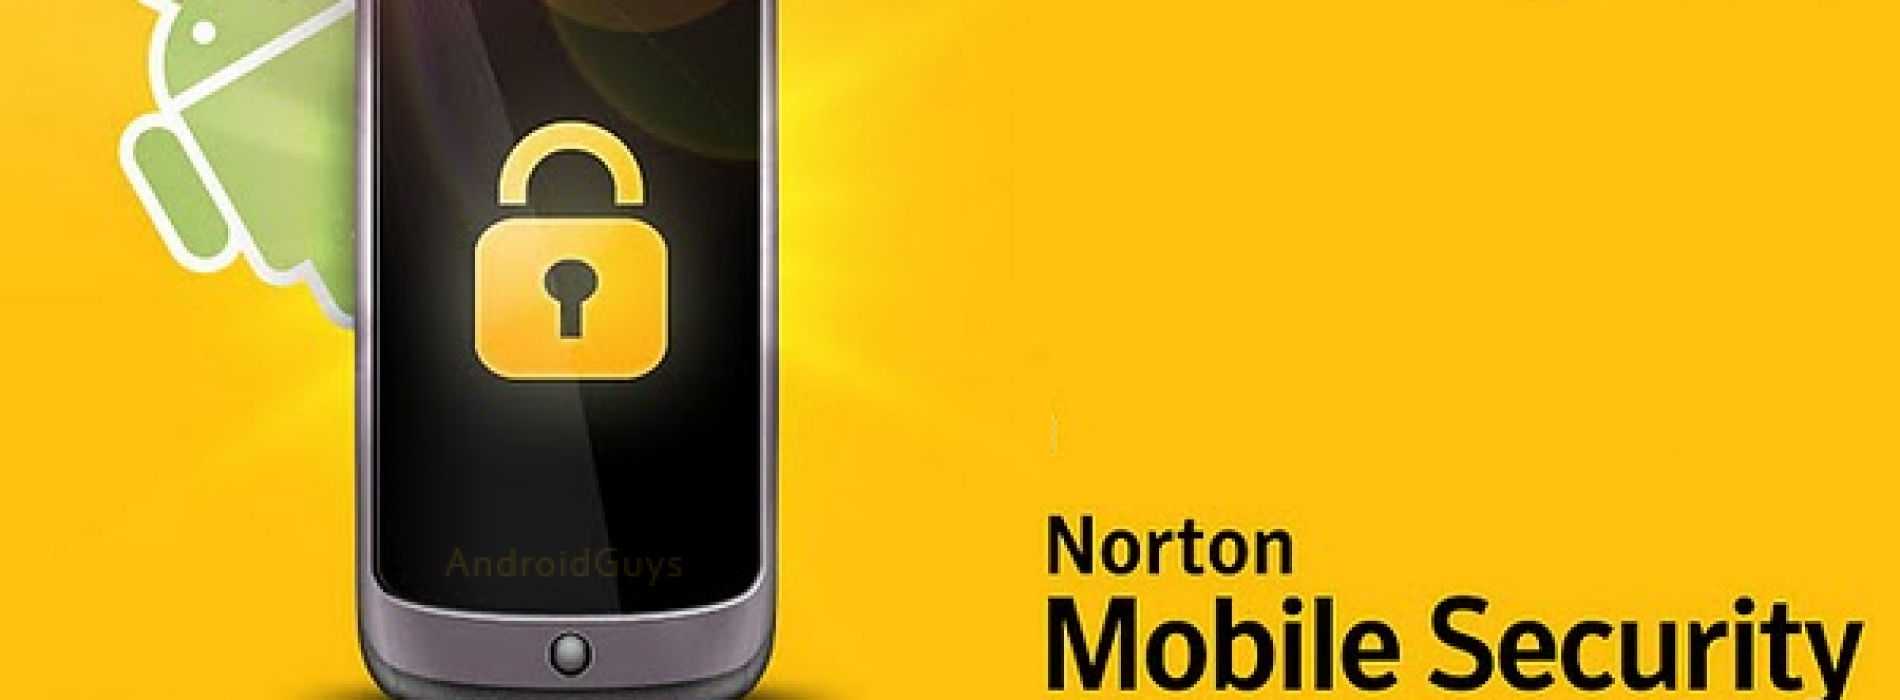 Samsung to offer 90 days of Norton Mobile Security in select smartphones